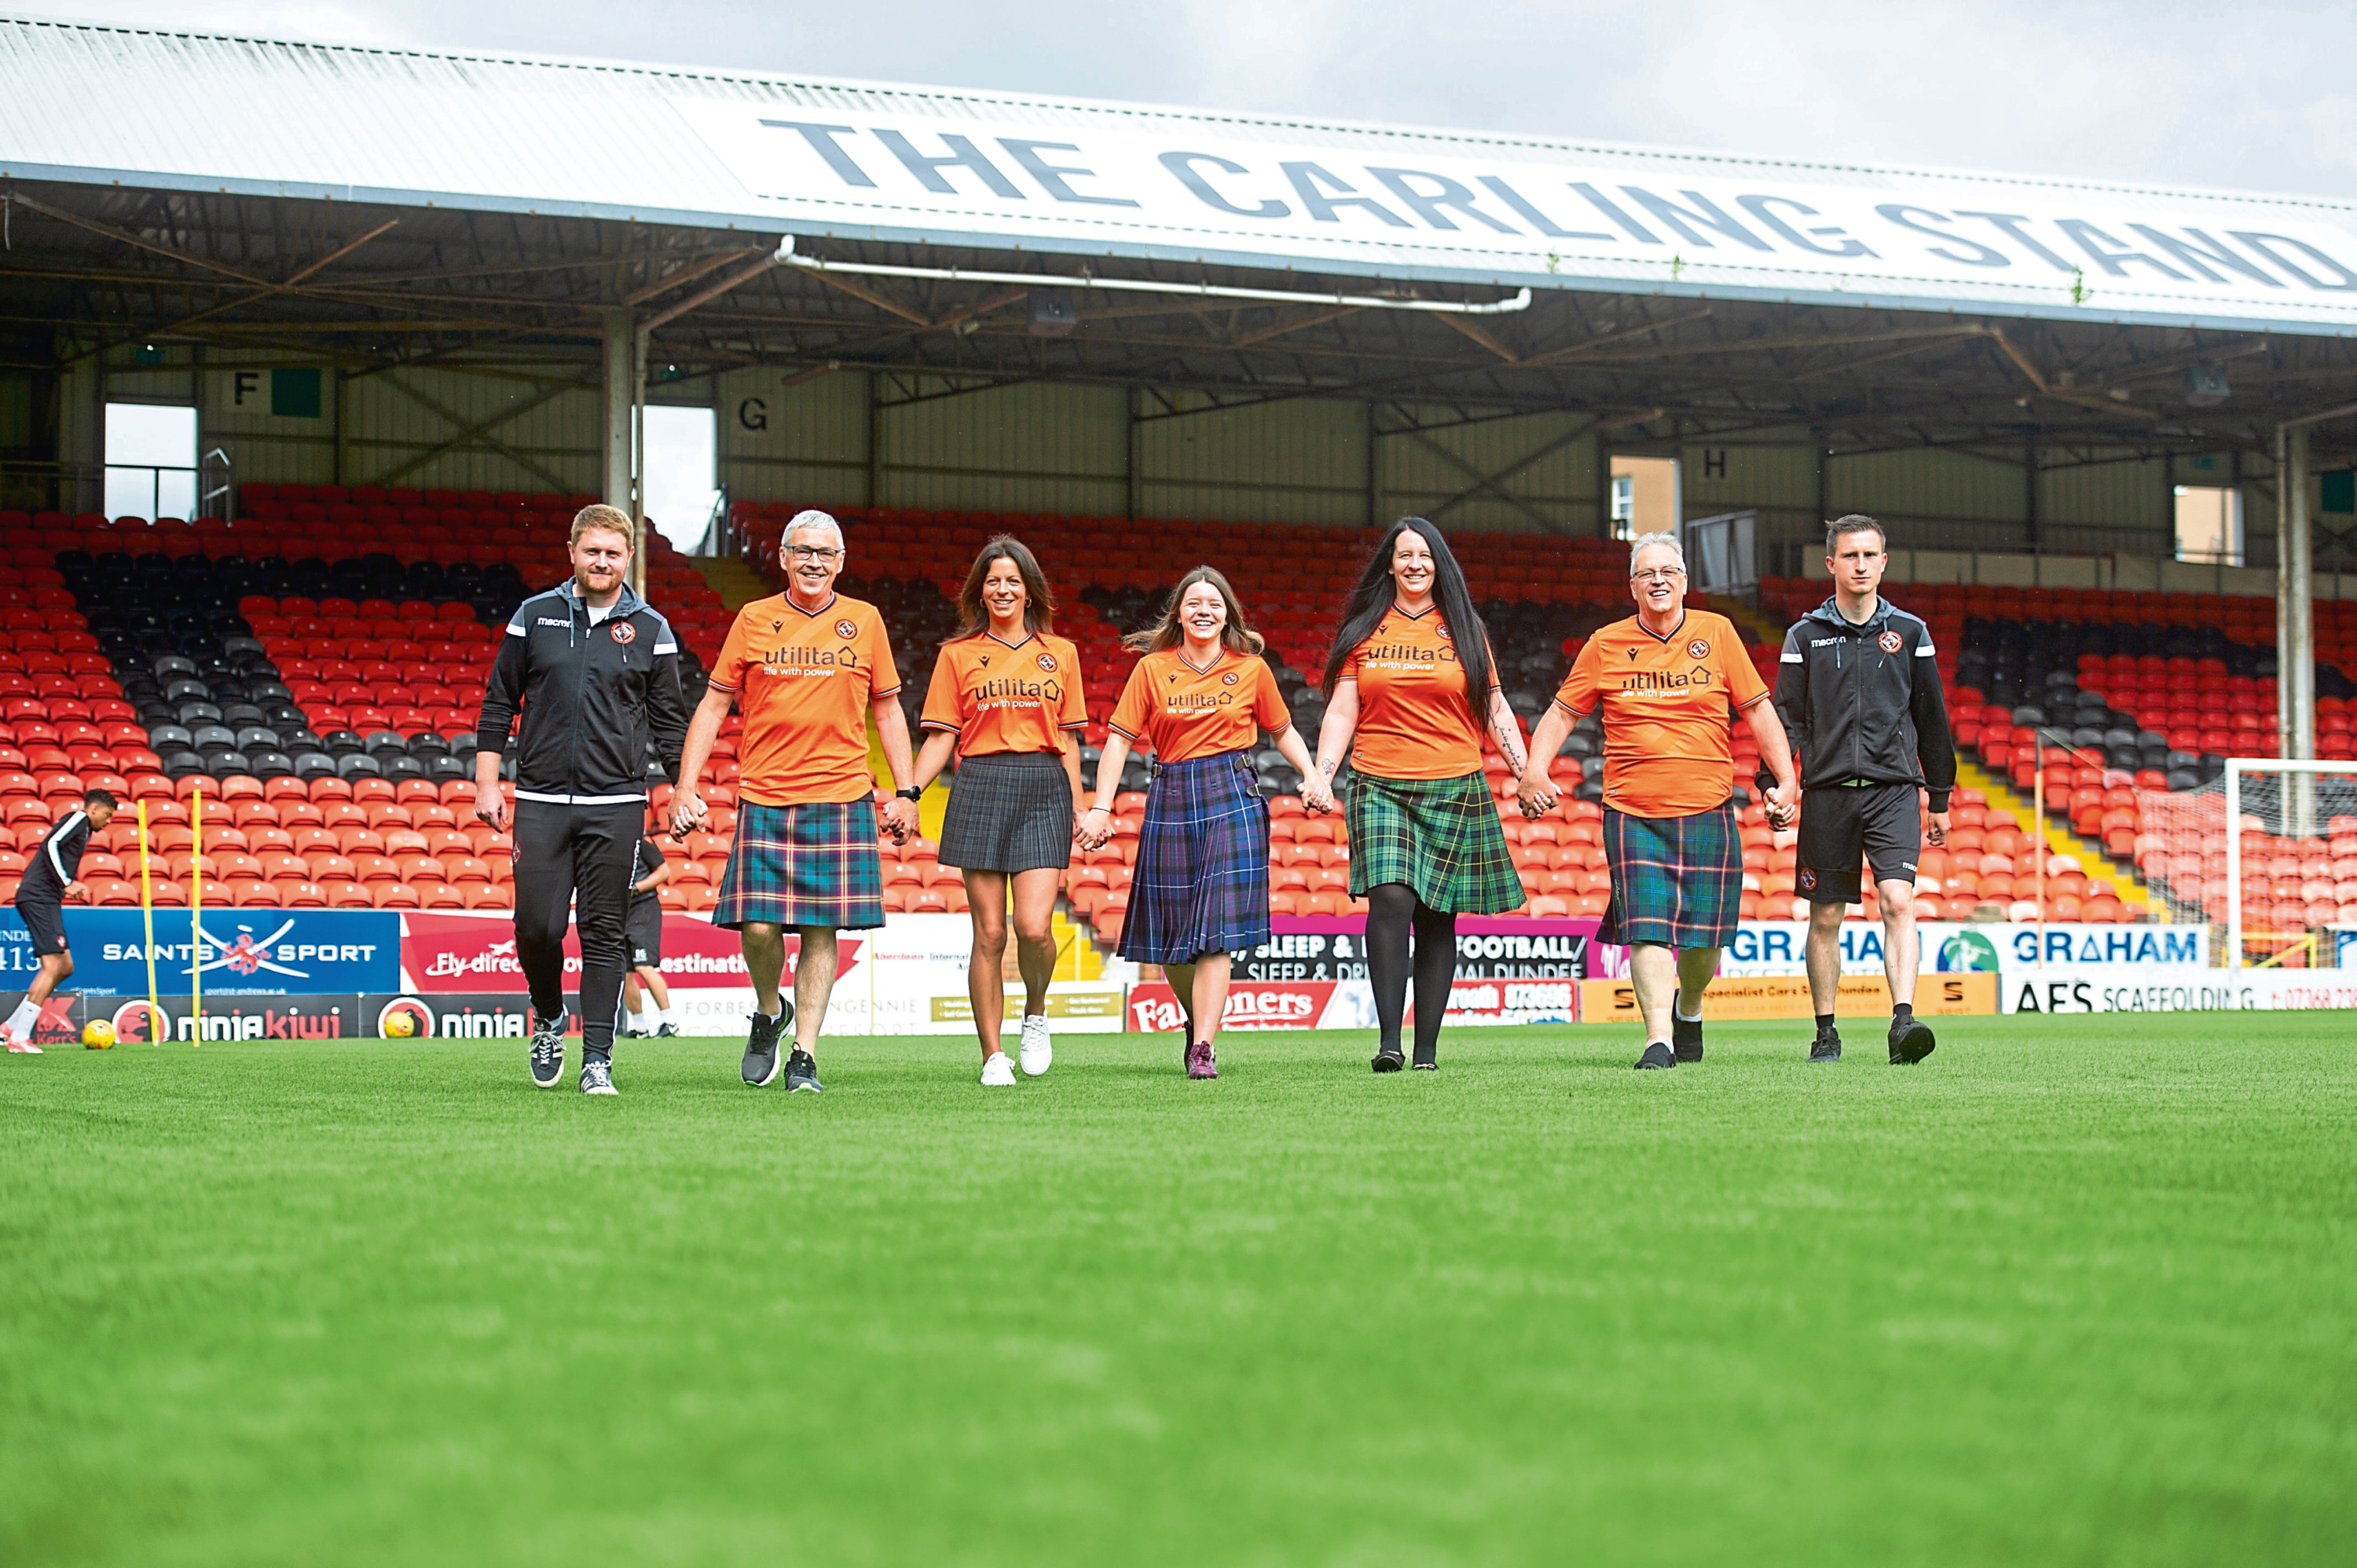 Michael Malone, Charlie Young, Beci Macaskill, Kennedy low, Amanda Low, Robert Young and Michael Anderson at Tannadice. They will all be taking part in the event.